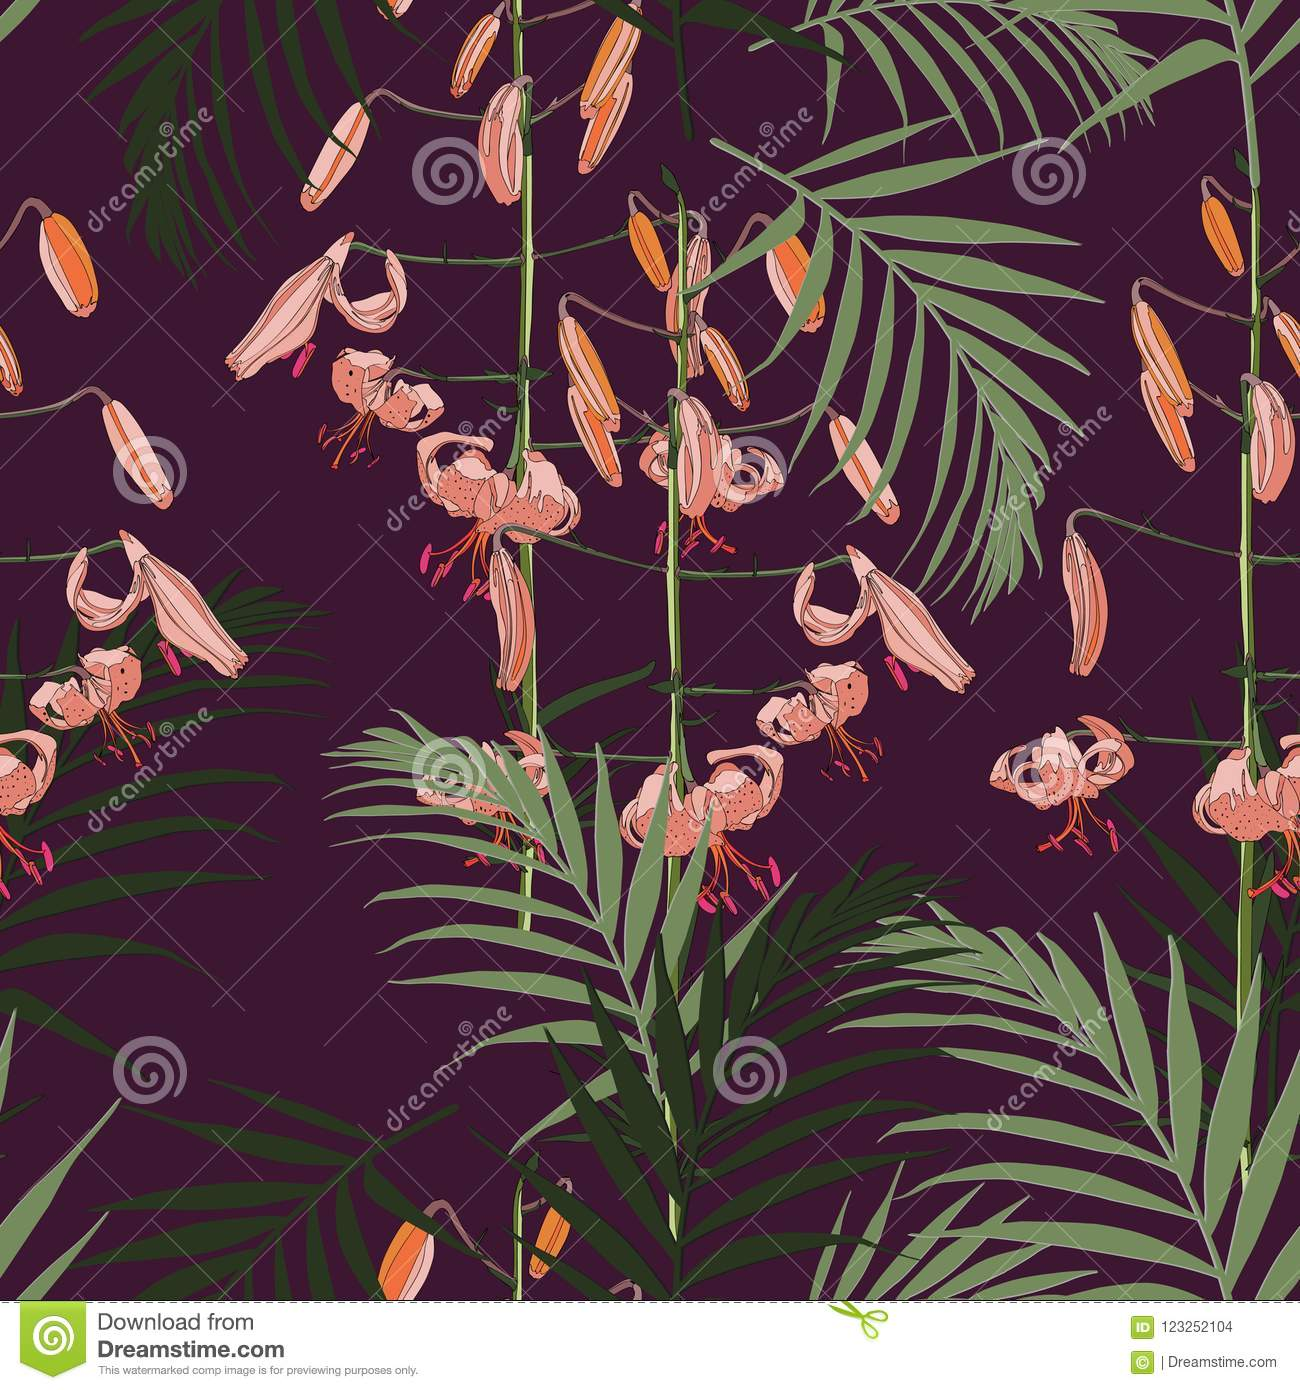 Seamless pattern, orange lilies flowers and green palm leaves on dark violet background